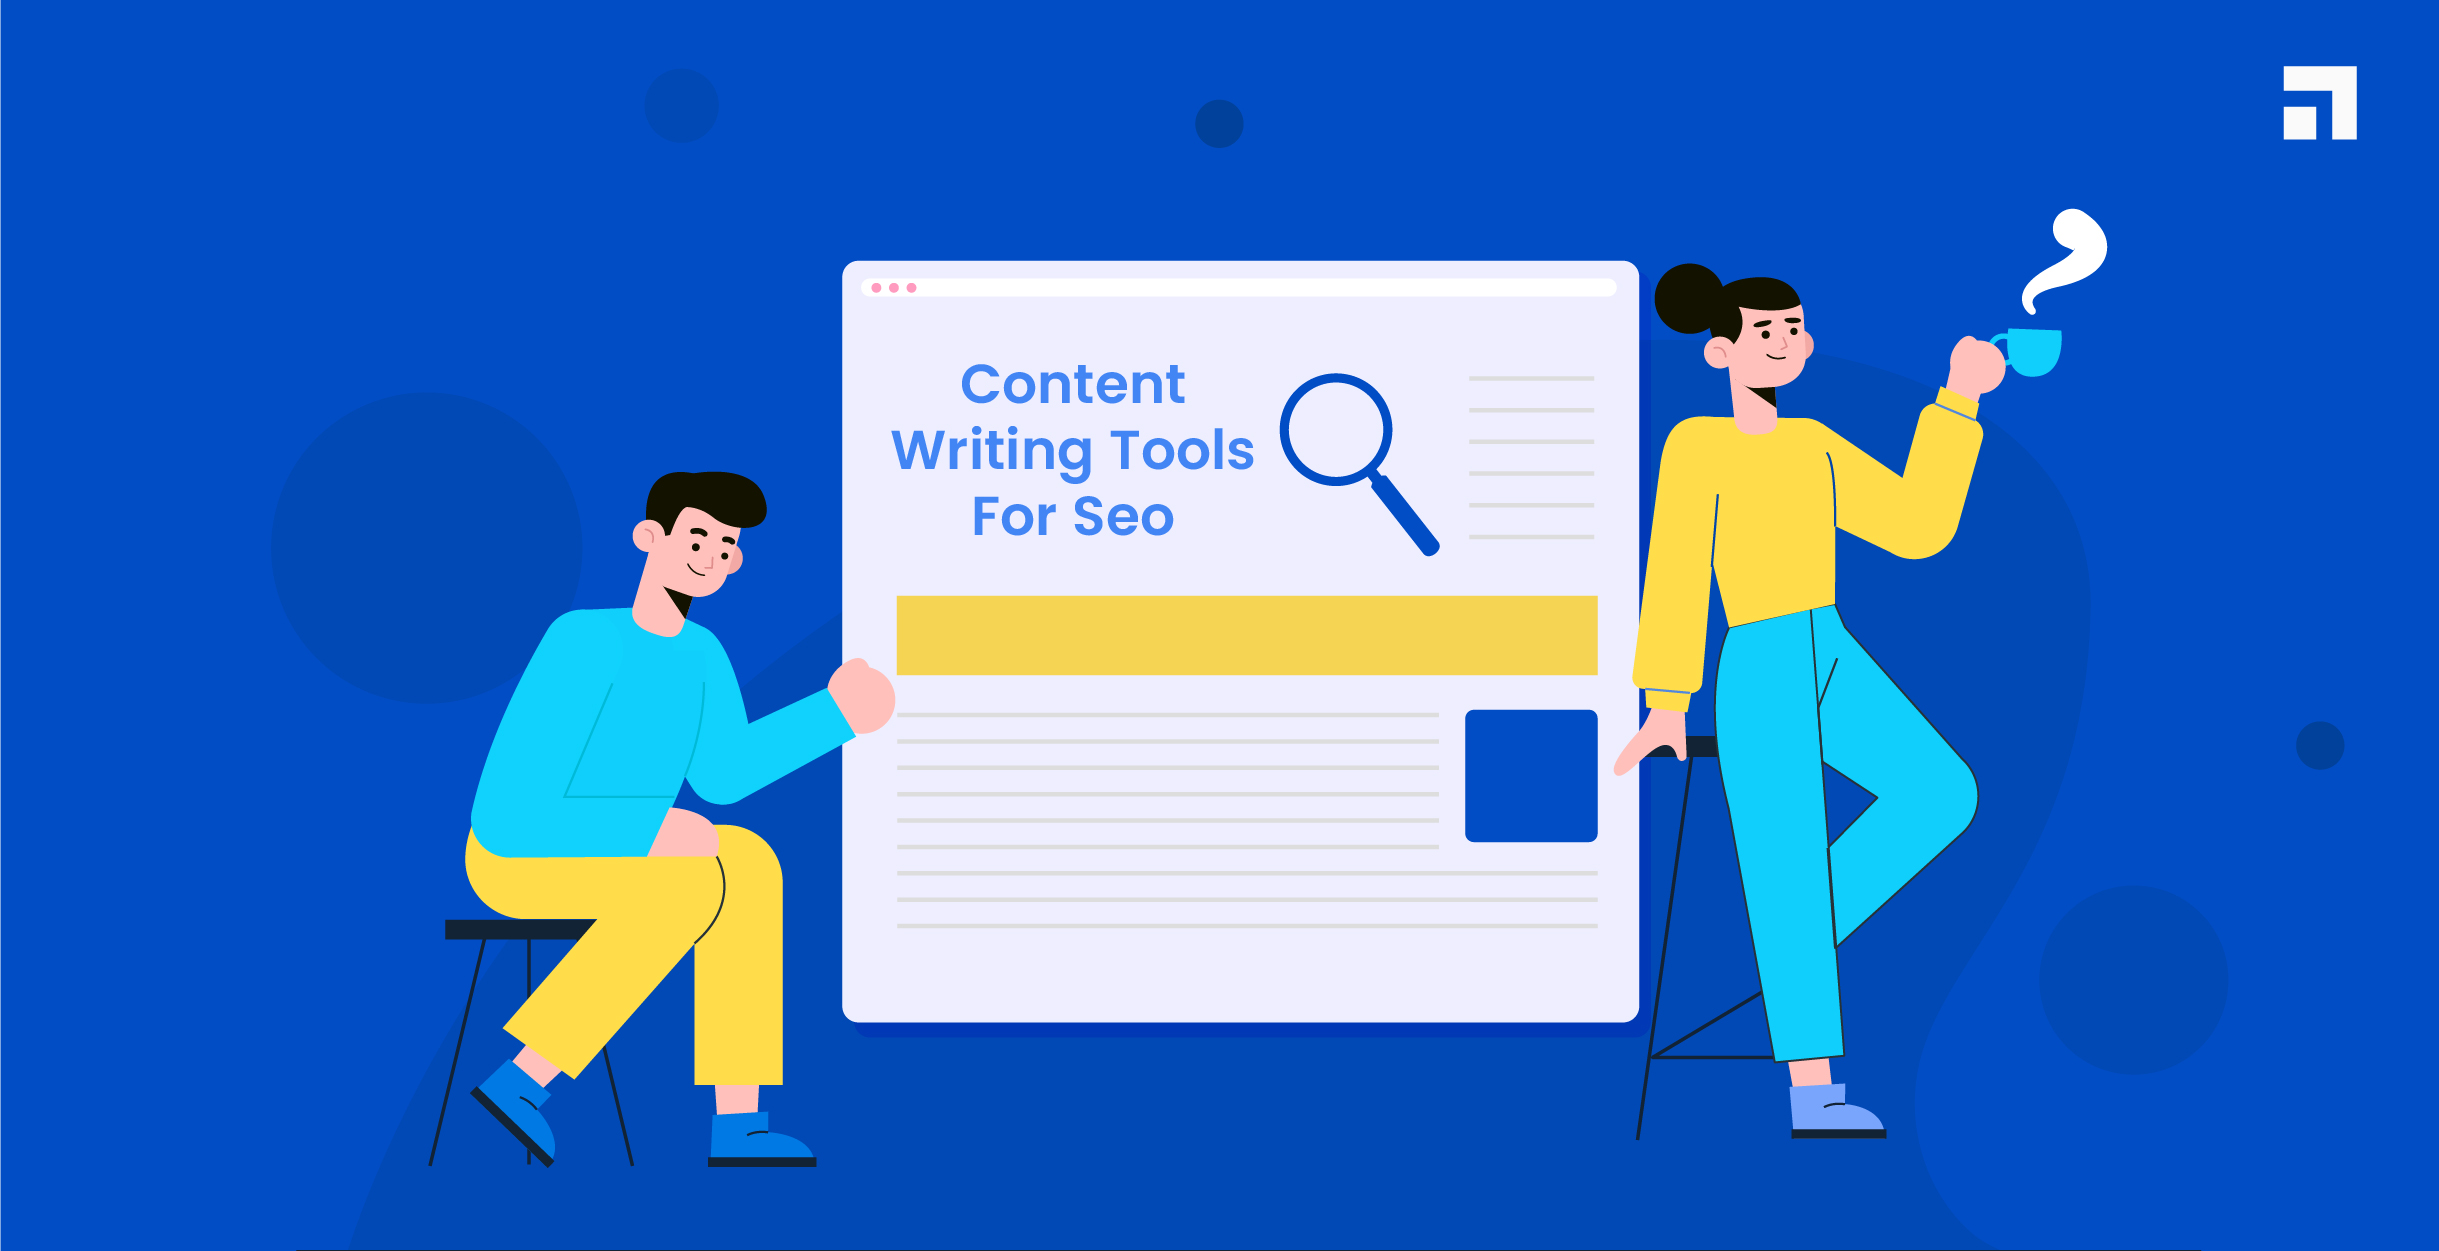 Best Content Writing Tools For SEO To Boost Organic Traffic